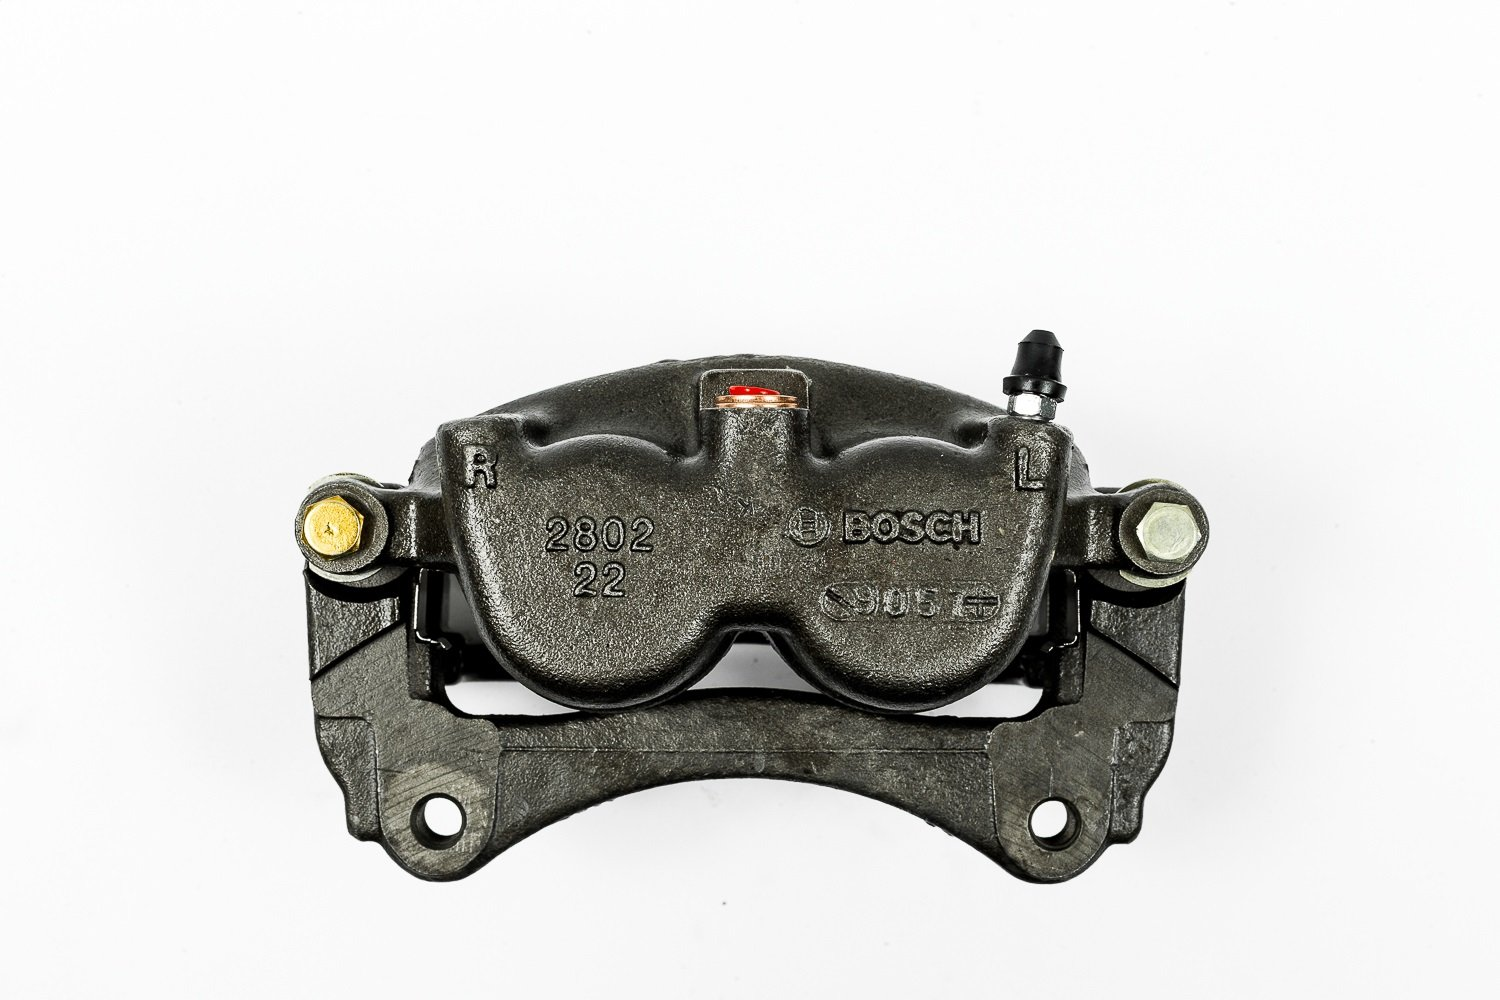 Power Stop L4607 Autospecialty Remanufactured Caliper